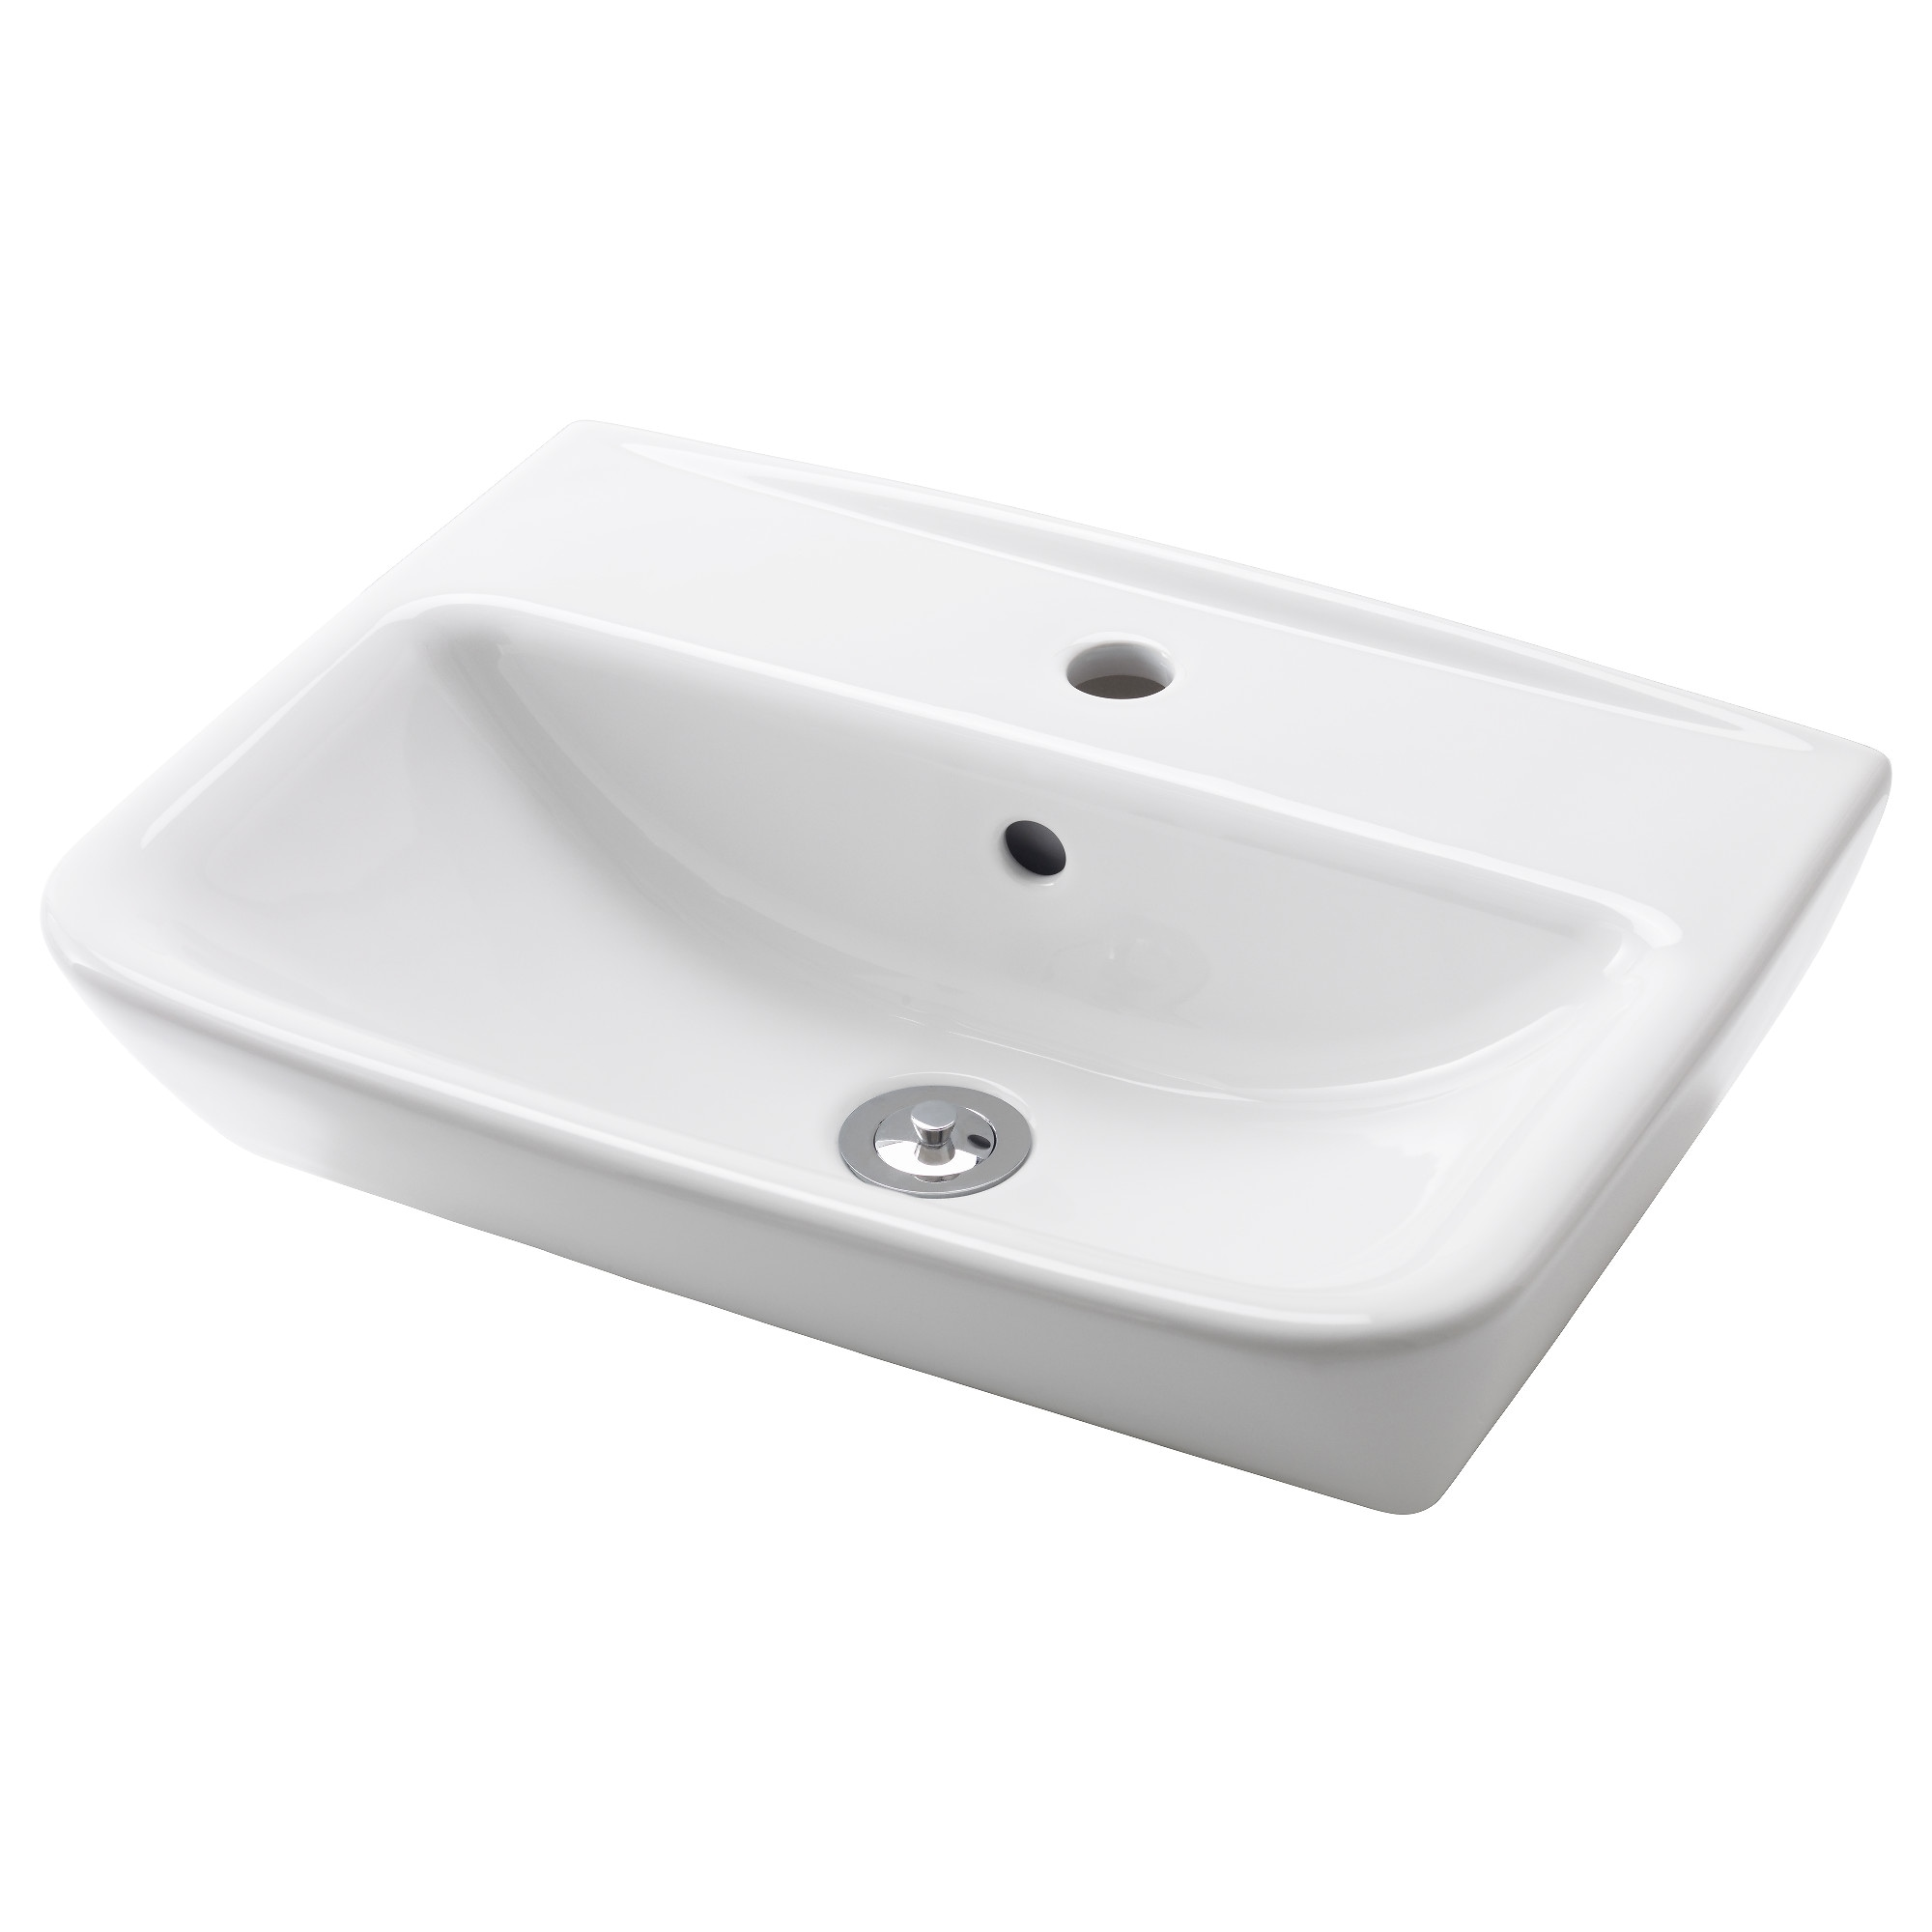 Bathroom sink dimensions mm - Tyngen Sink White Width 20 1 8 Depth 15 3